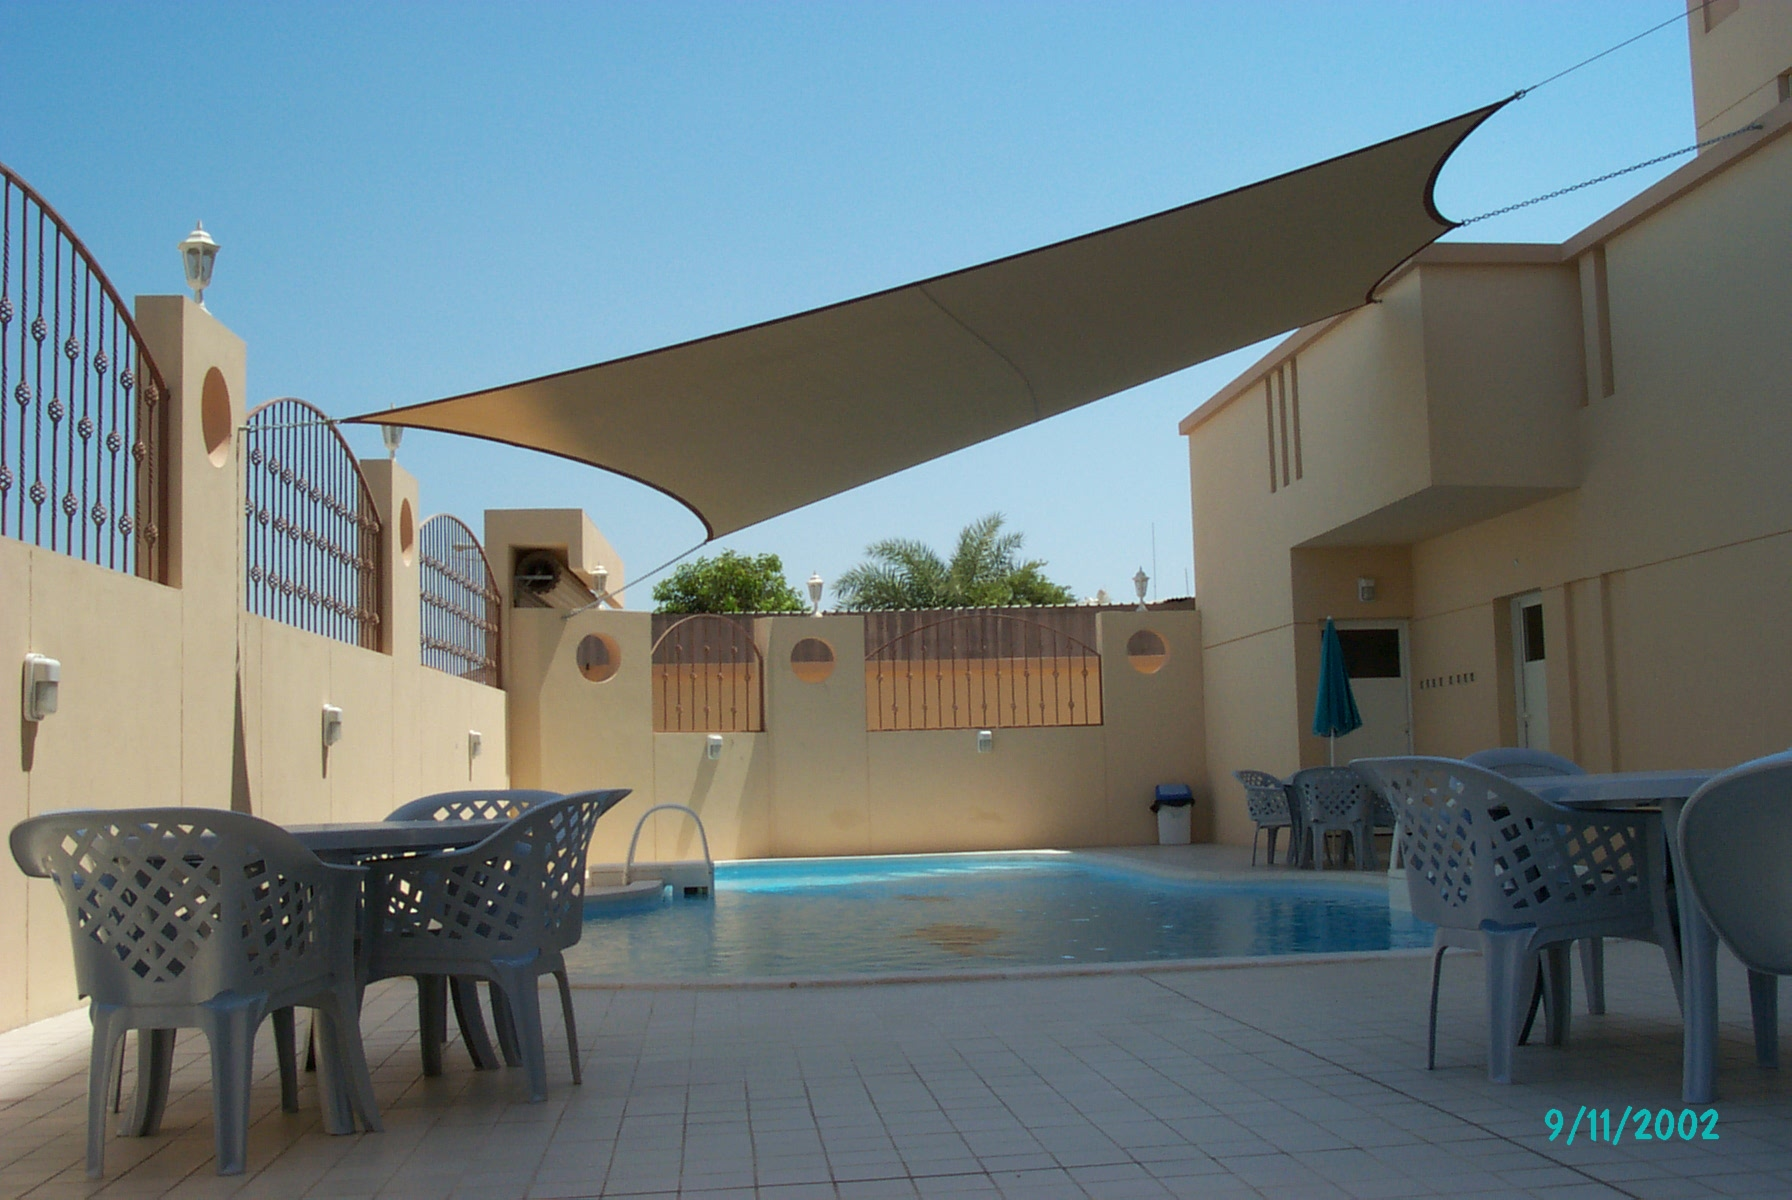 Swimming Pool Shades Manufacturers/ Suppliers In Dubai/Abu Dhabi/UAE